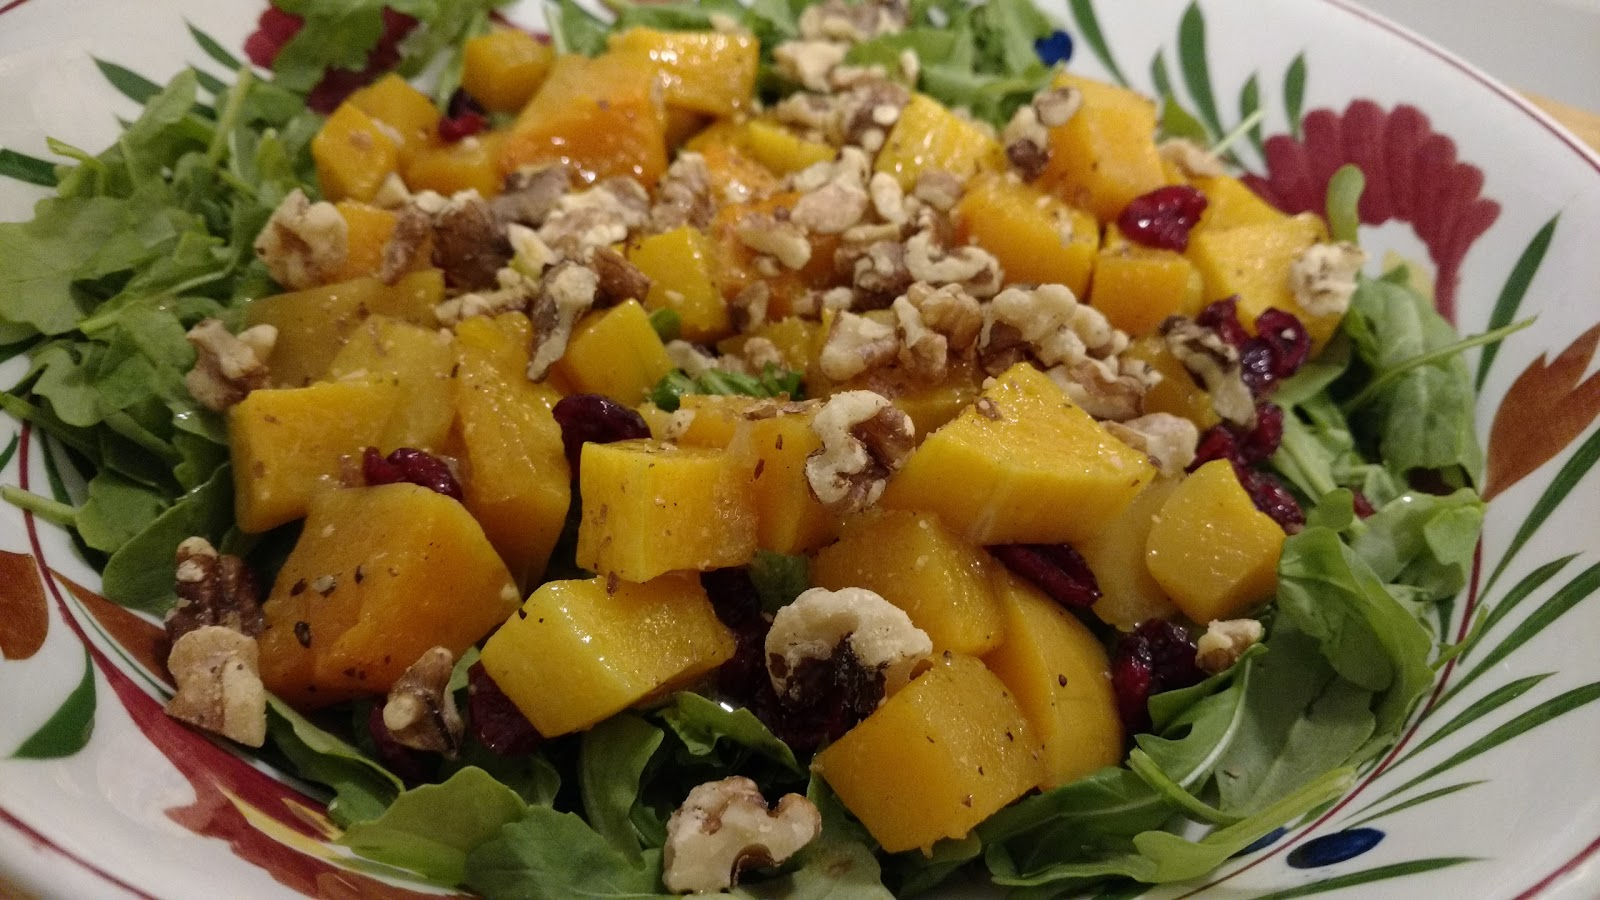 A Nice Salad For Monday Night This Recipe Is From Ina Garten S Book The Barefoot Contessa Will Be Lunch Number Of Days Week